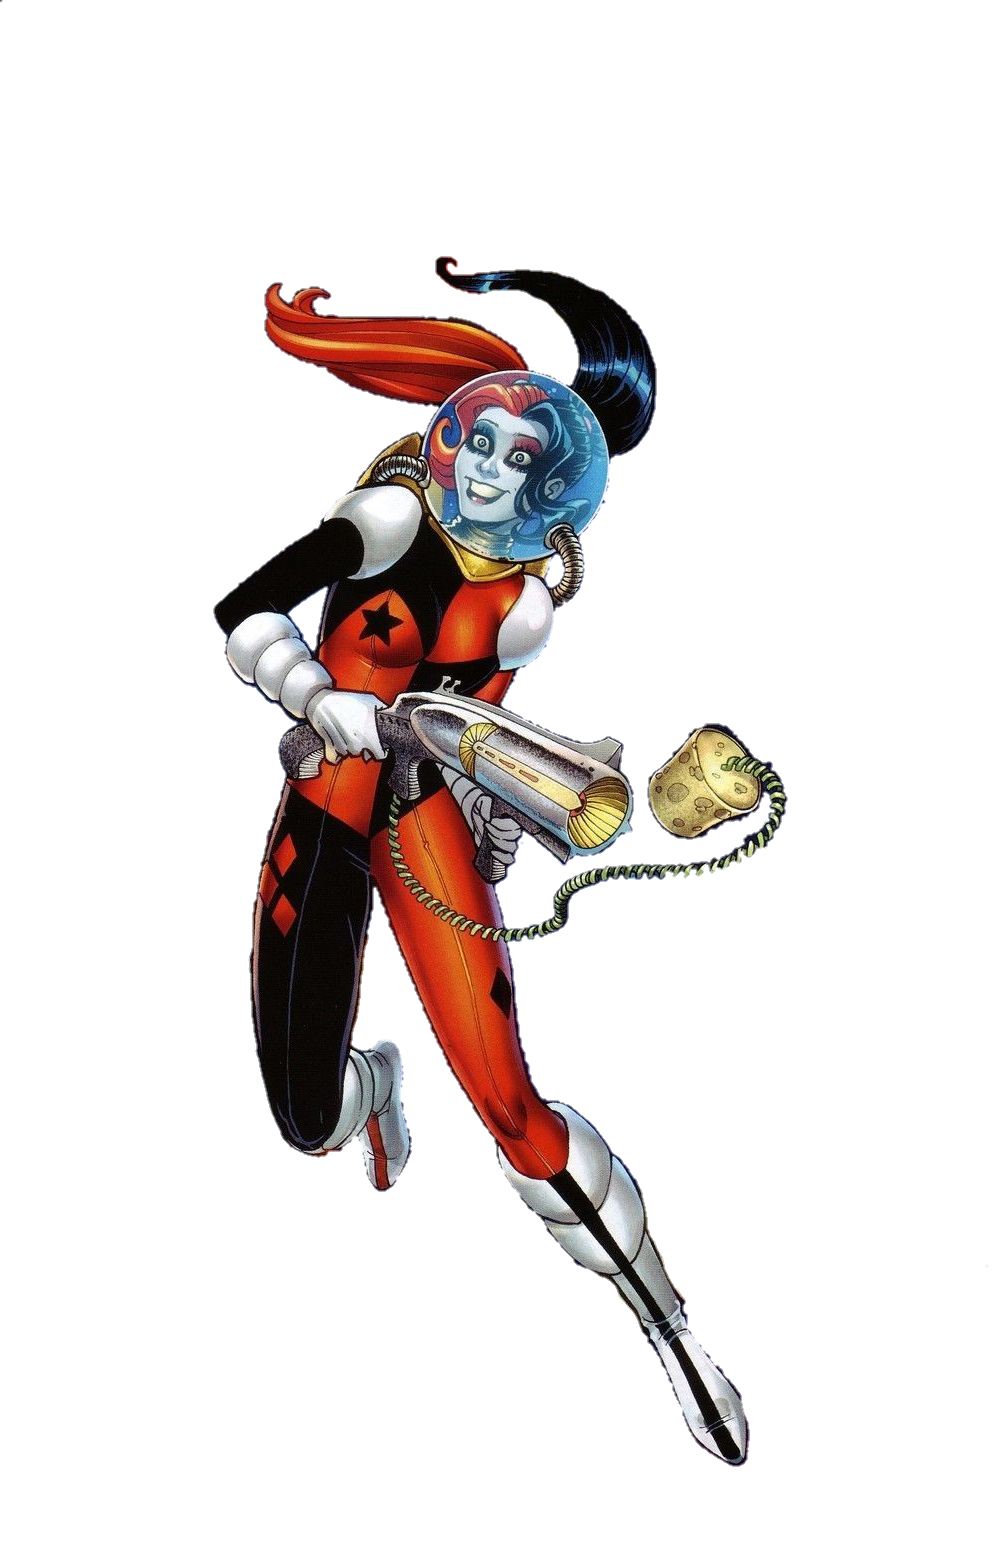 New 52 harley quinn in space by MayanTimeGod on DeviantArt